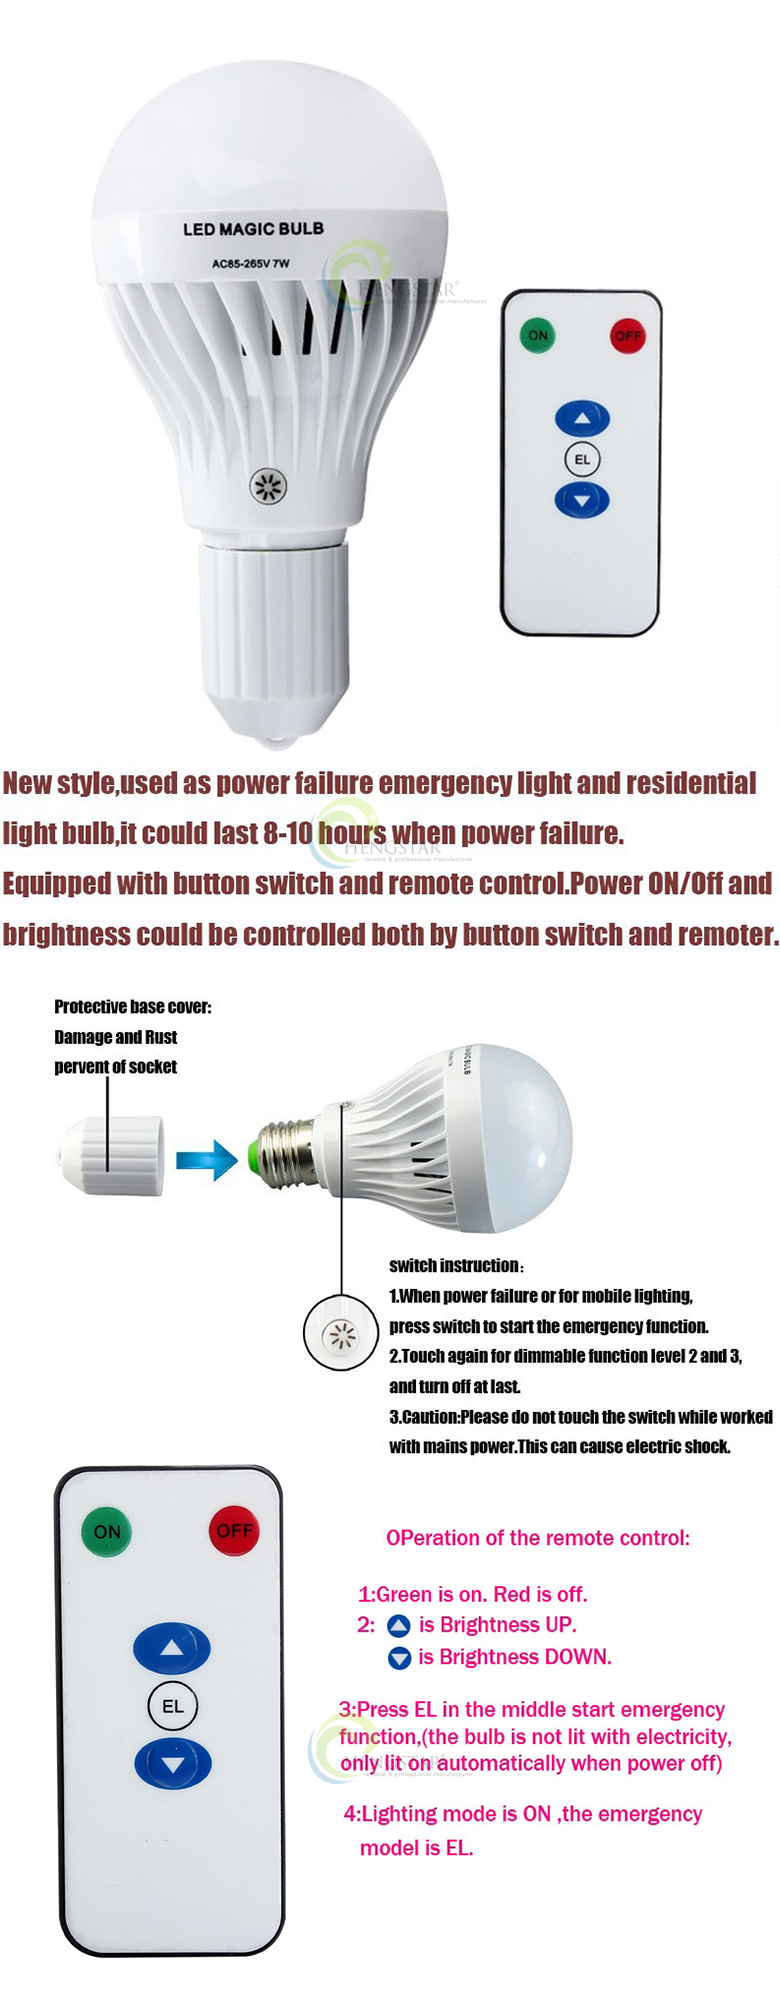 Torch Light 12w Rechargeable Led Bulb - Buy Rechargeable Led Bulb,Torch  Light Emergency Led Bulb Rechargeable,Light Led Bulbs Product on Alibaba com